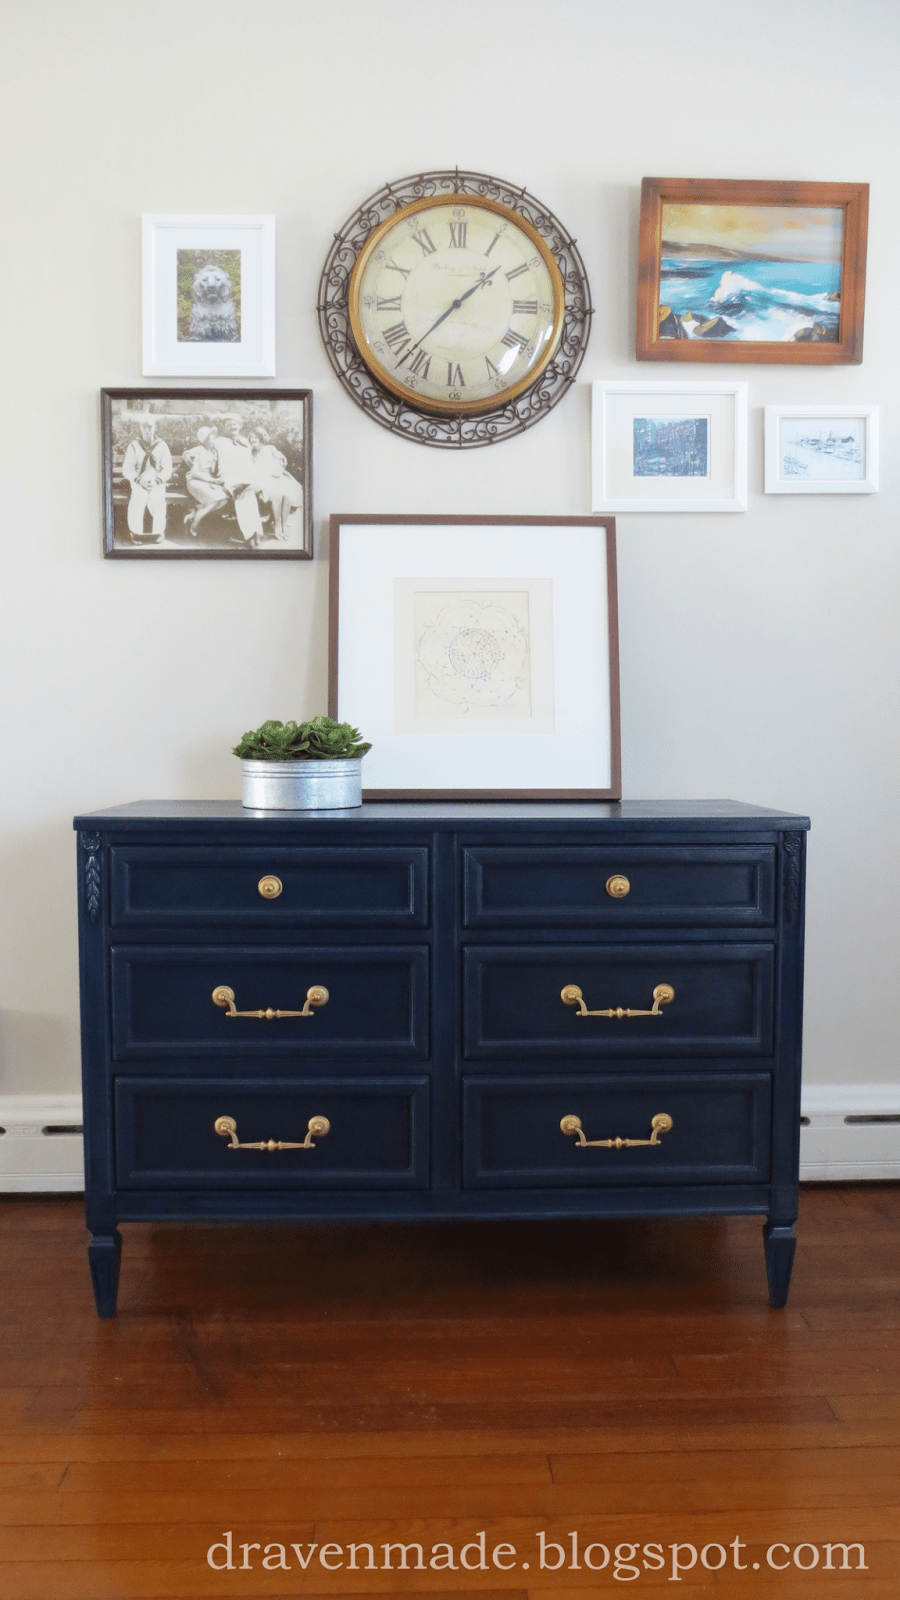 Painted Royal Blue Amp Gold Dresser Living In A Fixer Upper